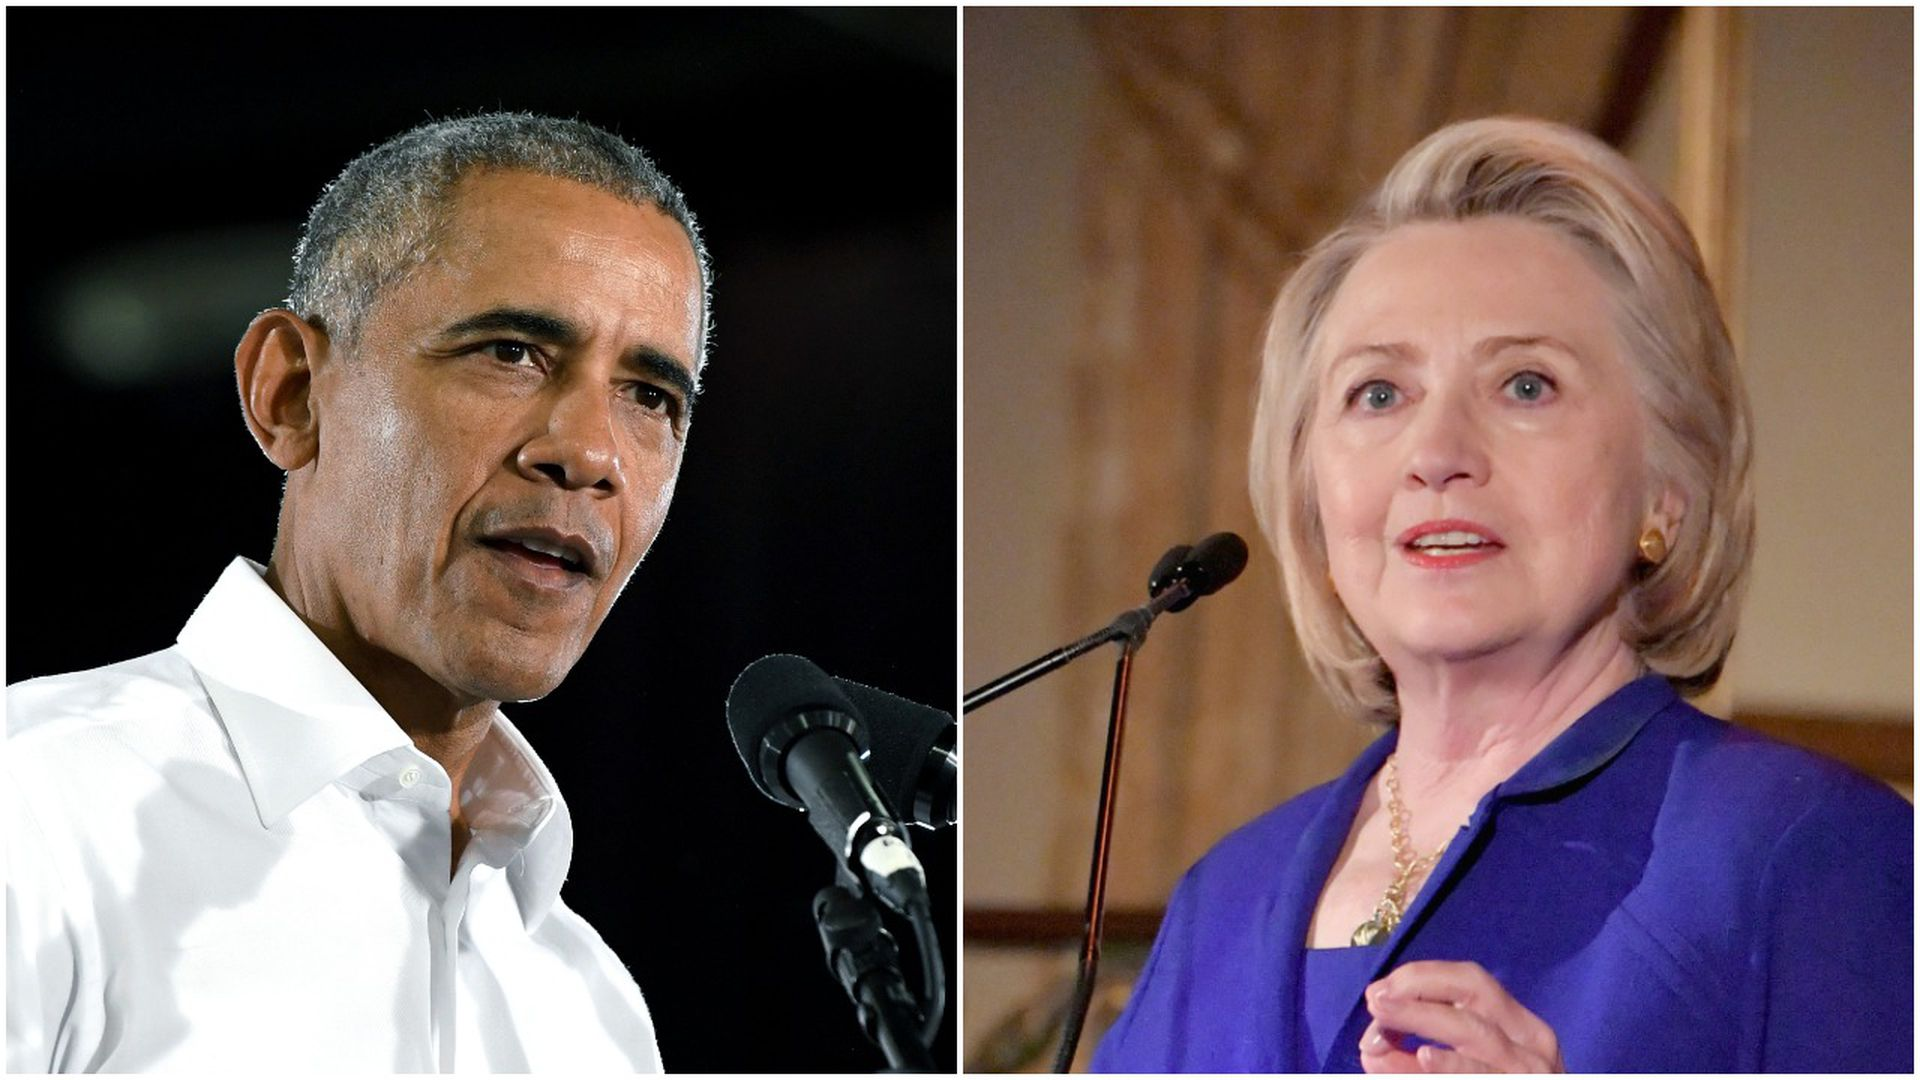 Side by side photos of Barack Obama and Hillary Clinton